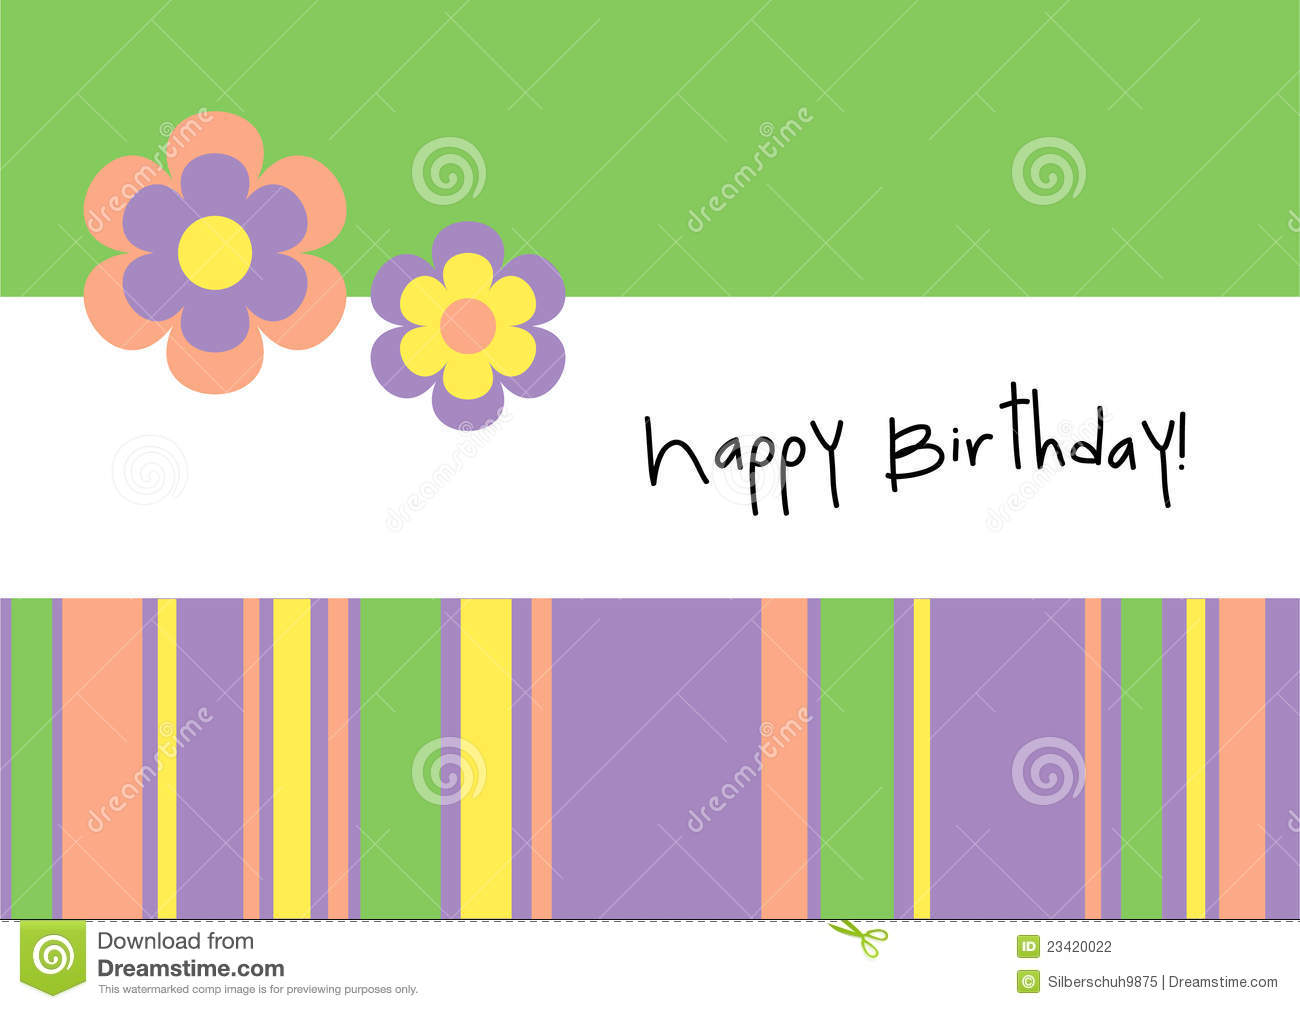 Happy birthday greeting card stock vector illustration of happy birthday greeting card kristyandbryce Images